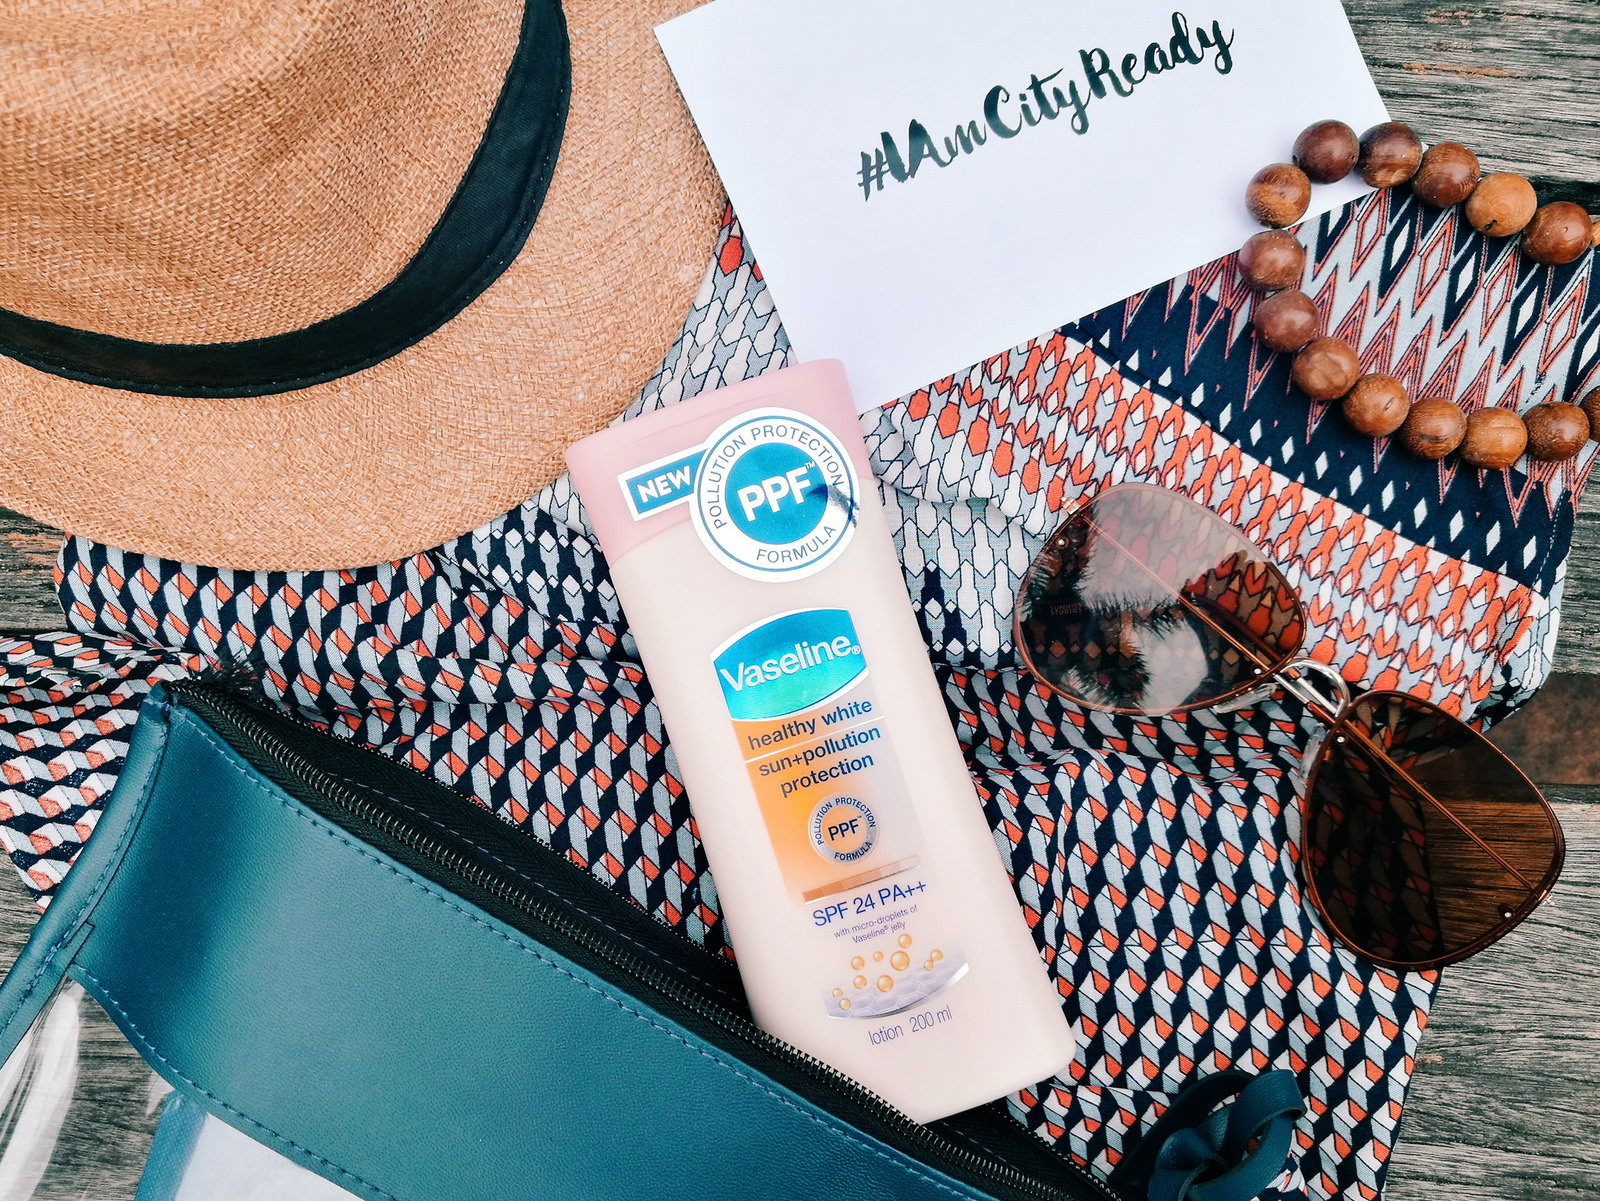 The One Product Every Modern Filipina Needs - VASELINE HEALTHY WHITE SUN + POLLUTION PROTECTION